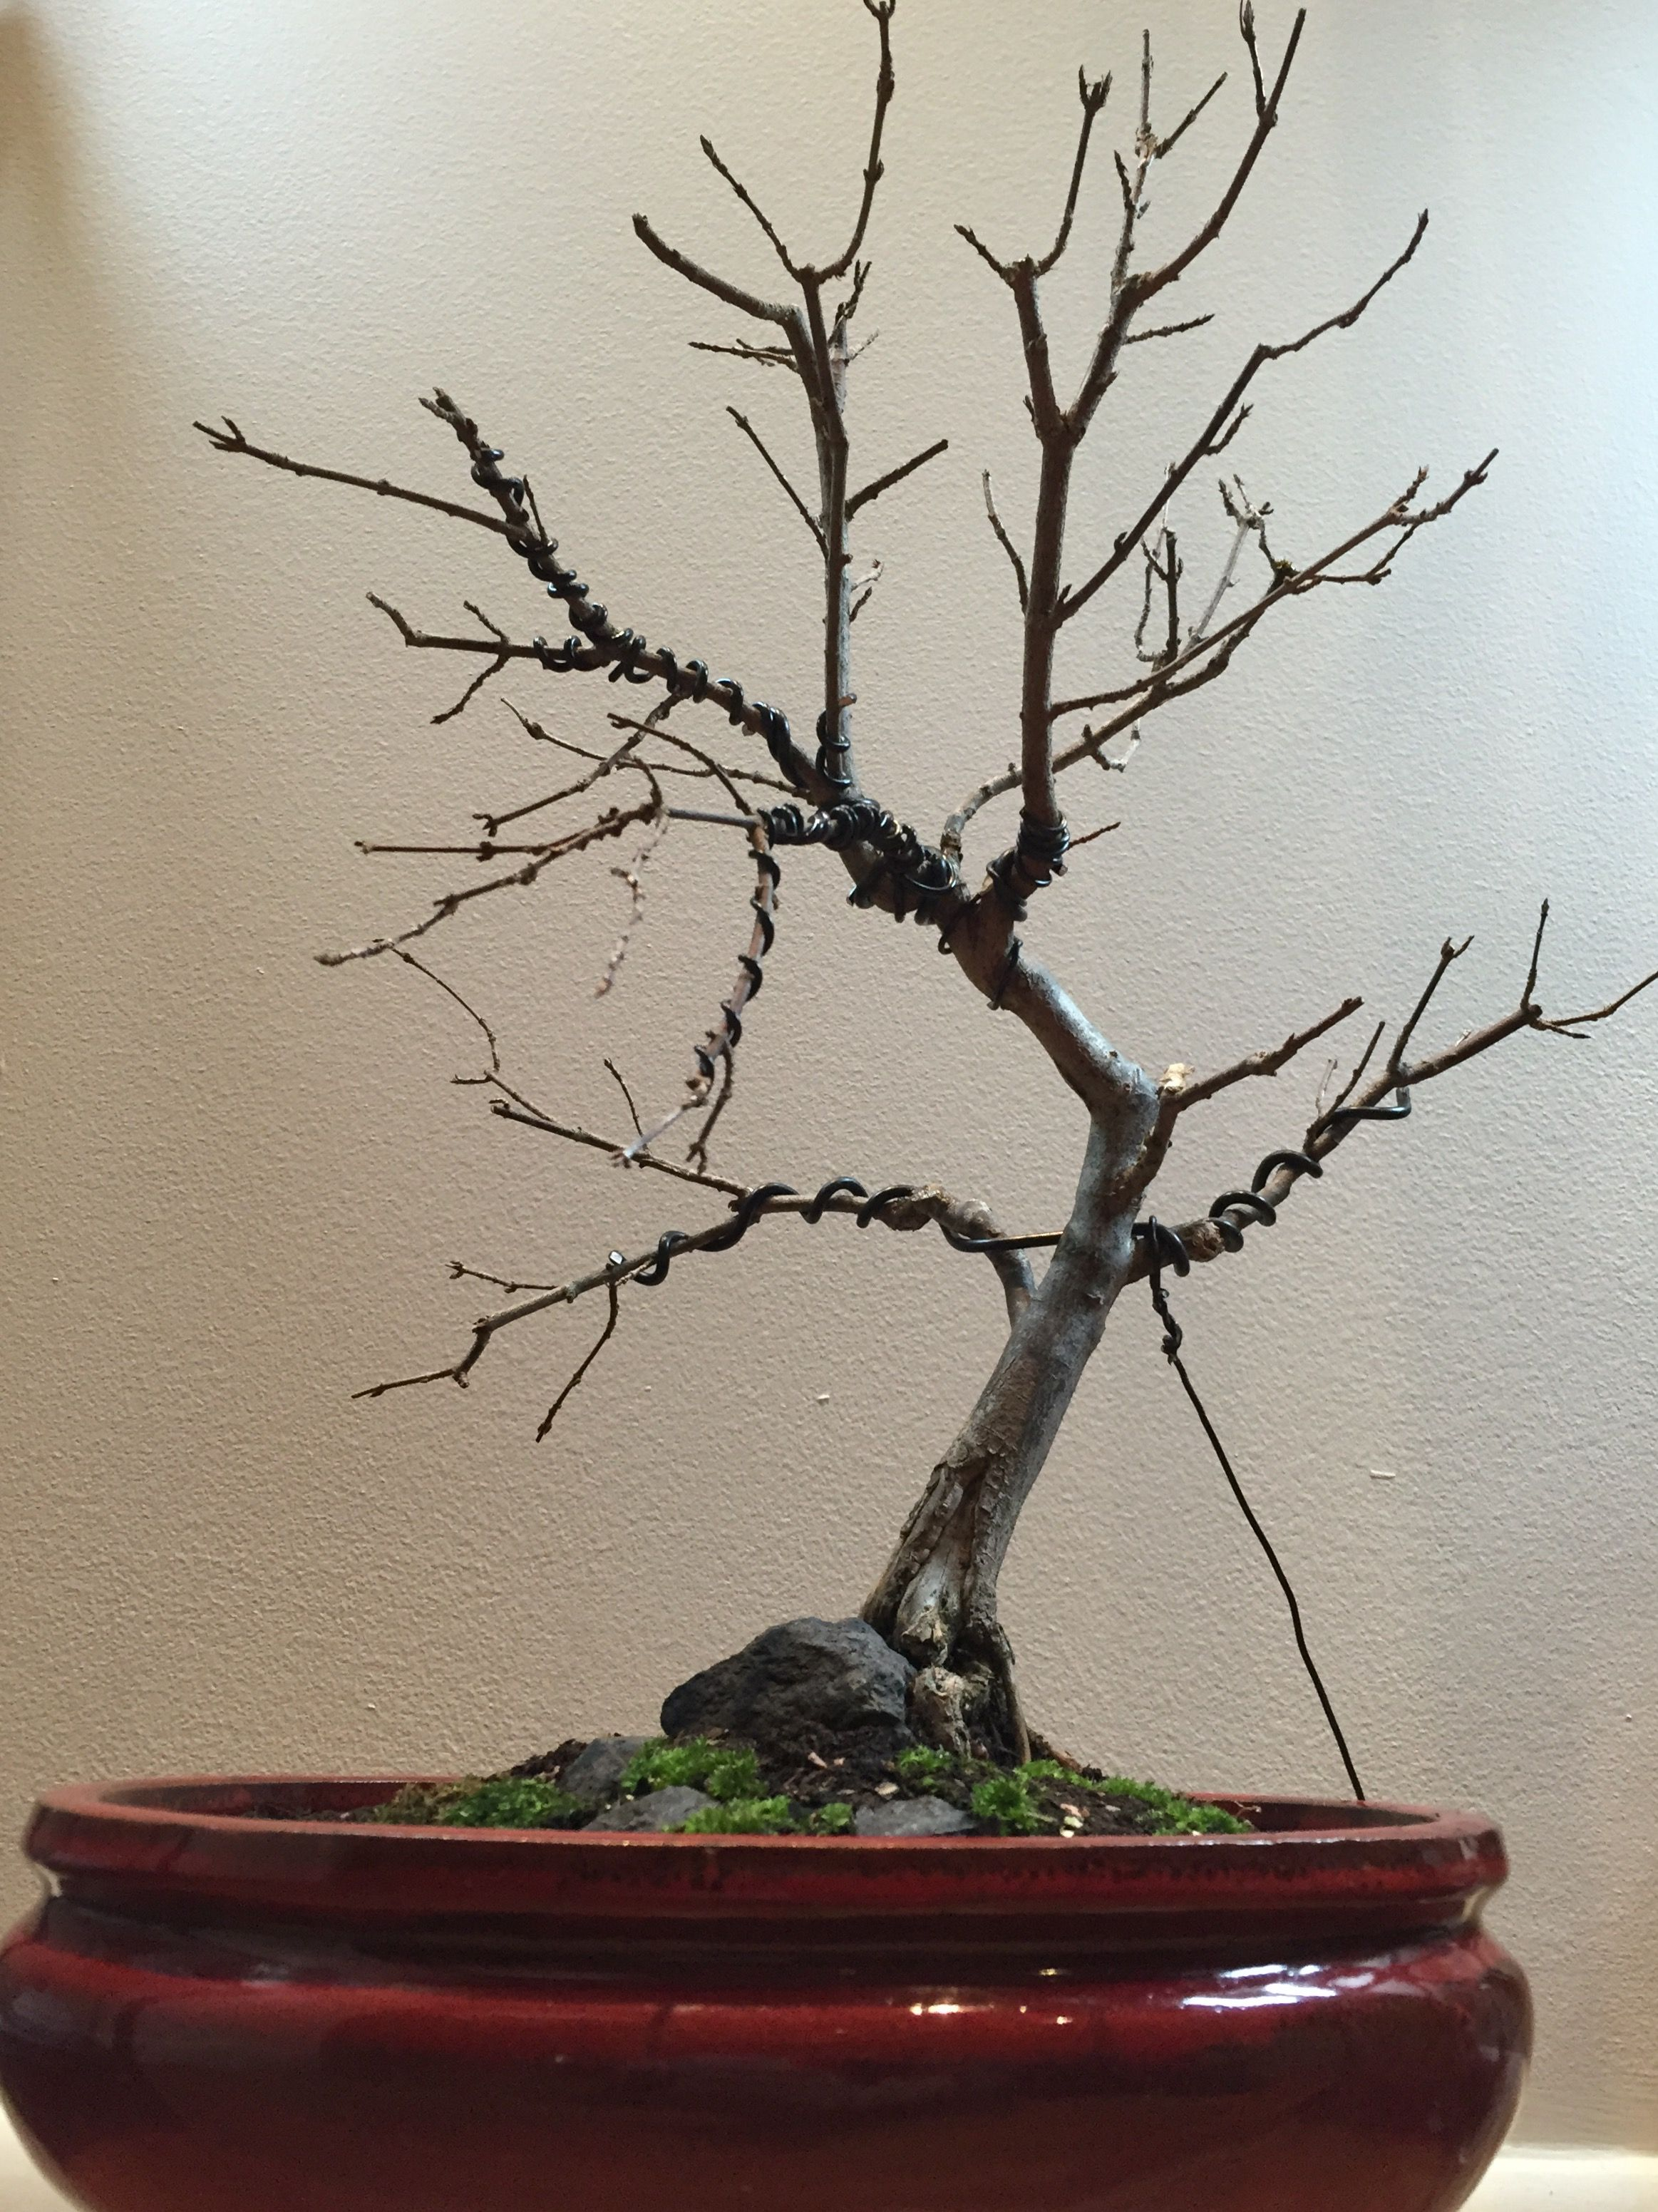 my trident maple first pruning wiring and re potting 09 06 2016 rh pinterest com au Bonsai Copper Wire Bonsai Wiring Tips